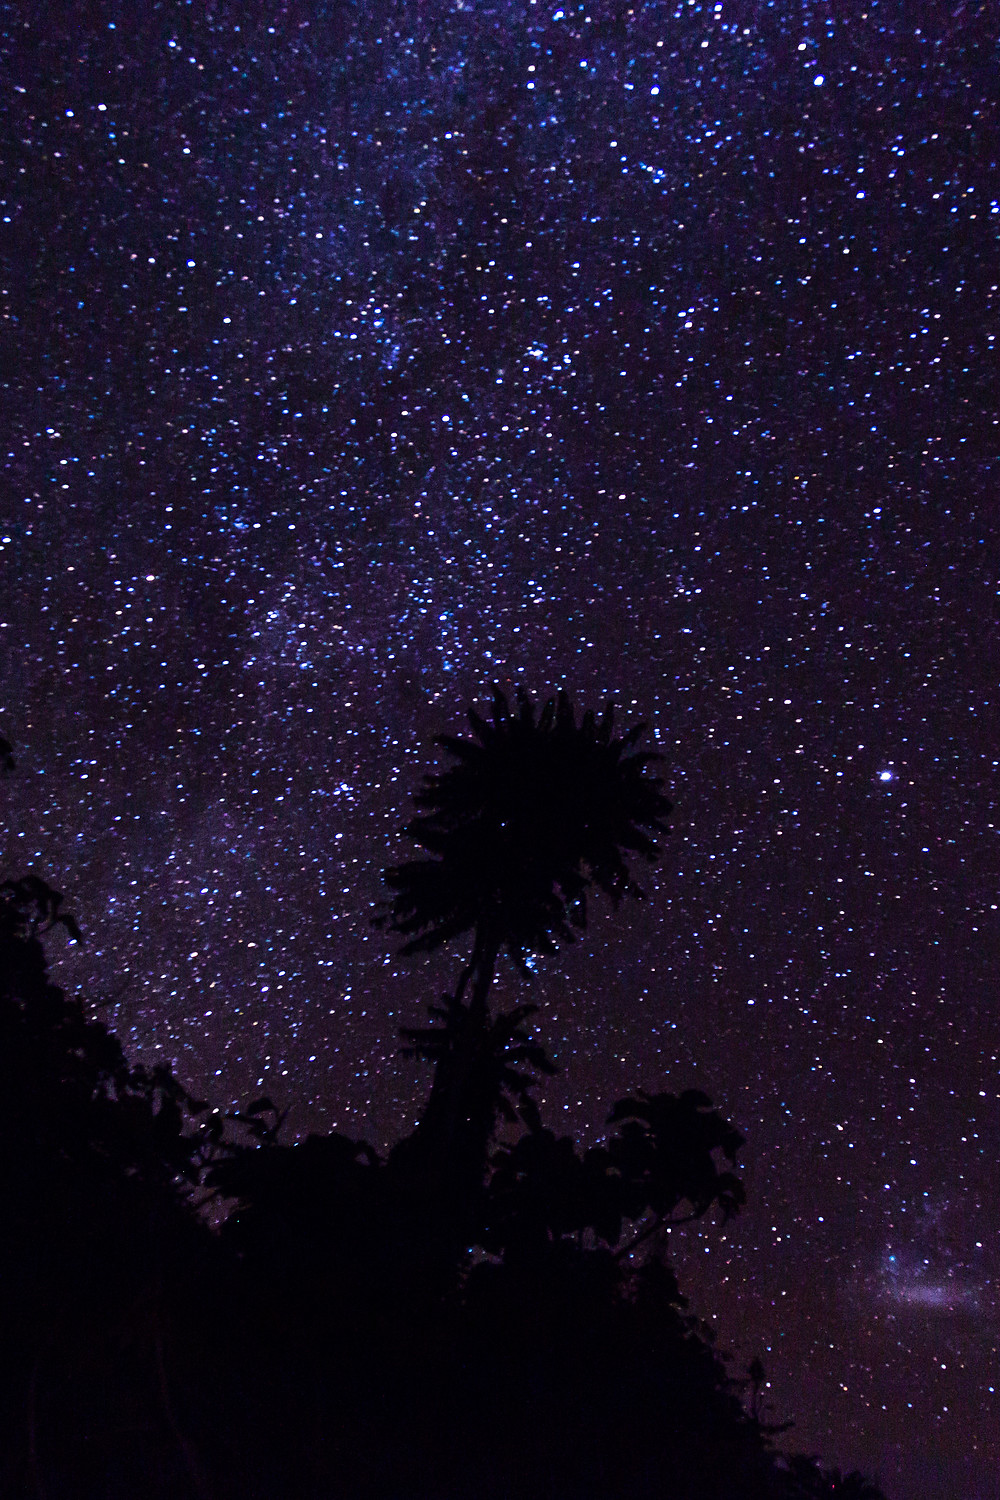 Sulawesi: Castaways - too many stars.